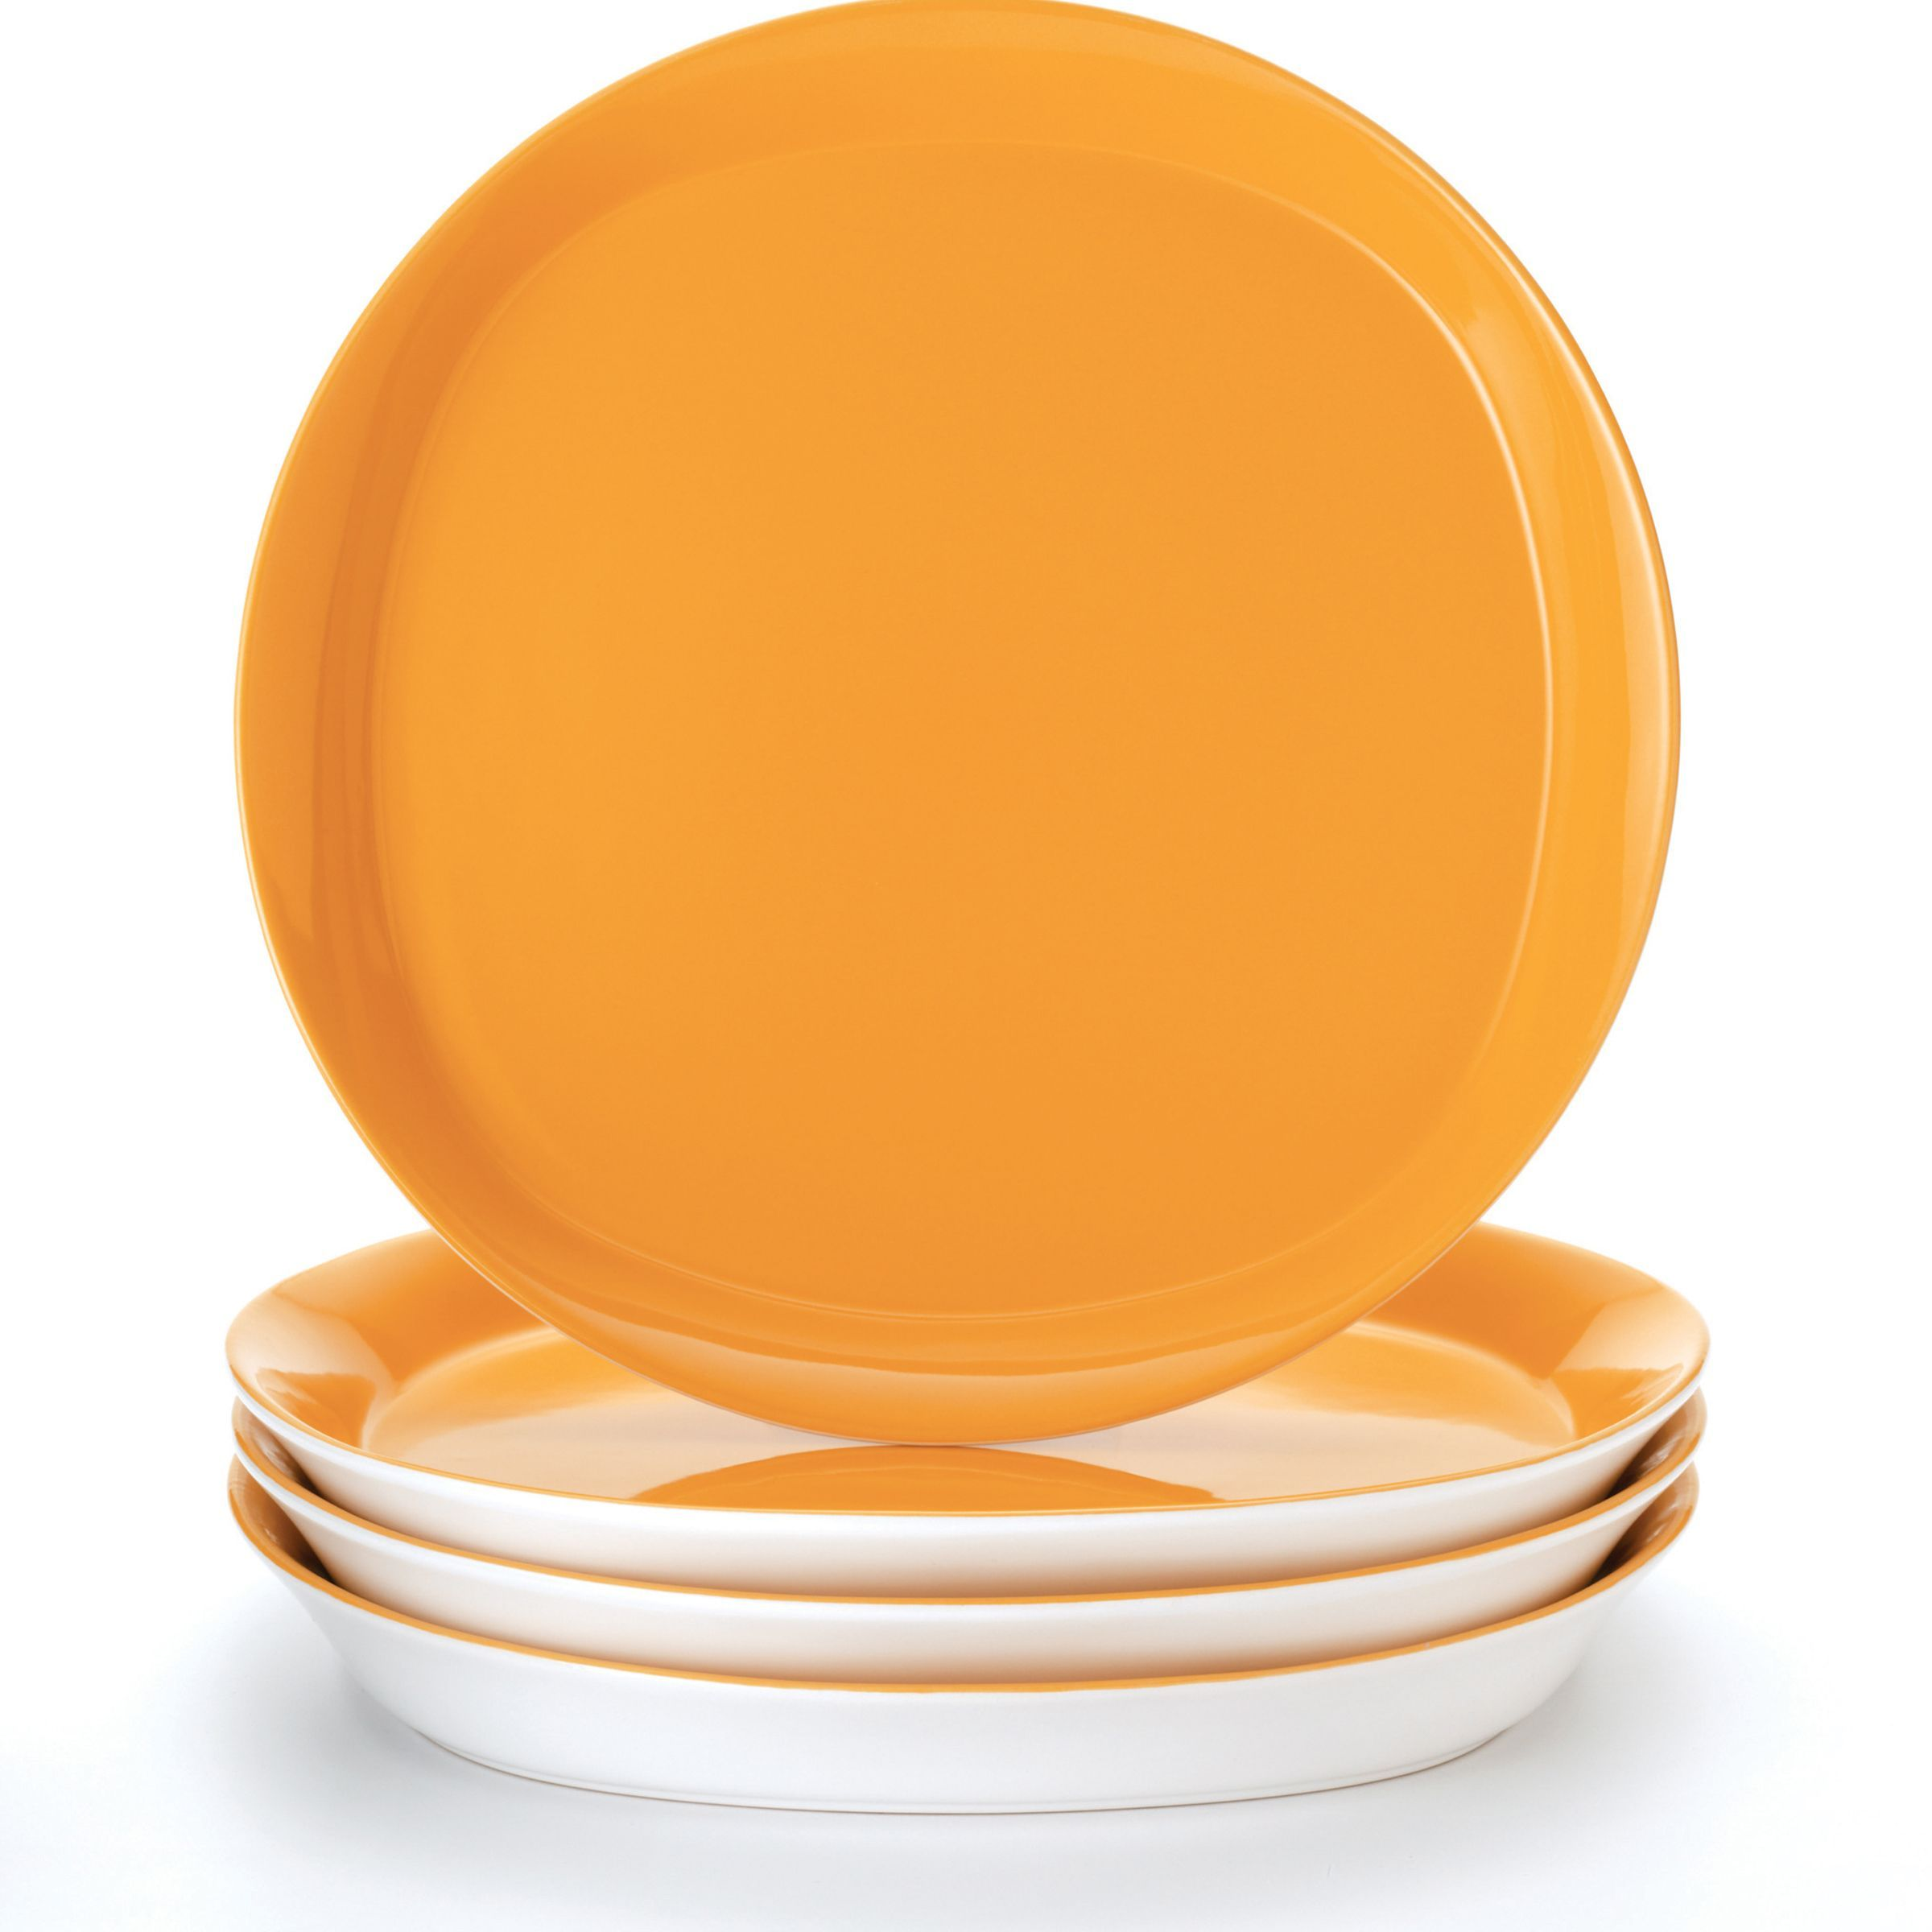 Overstock.com Online Shopping - Bedding Furniture Electronics Jewelry Clothing \u0026 more. Dinner Plate ...  sc 1 st  Pinterest & Rachael Ray Round and Square Lemon Zest\u0027 4-Piece Dinner Plate Set ...